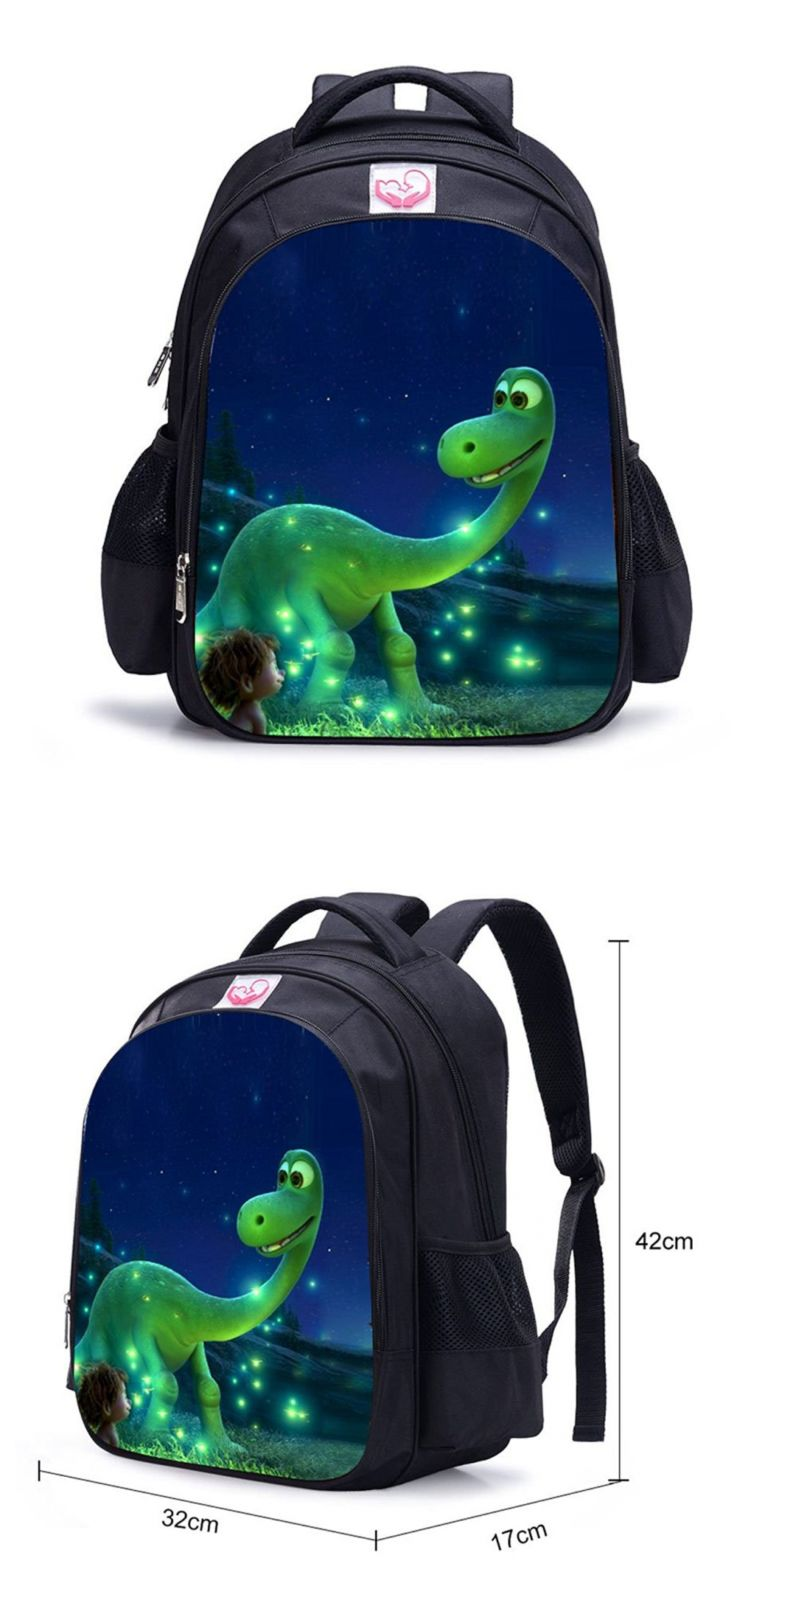 97717b4a0f8 ... VBESTLIFE 3D Dinosaur Backpack For Boys Children backpacks kids  kindergarten Small SchoolBag Girls Cute,Animal  Backpacks and Bags 57882  Matmo Cool ...